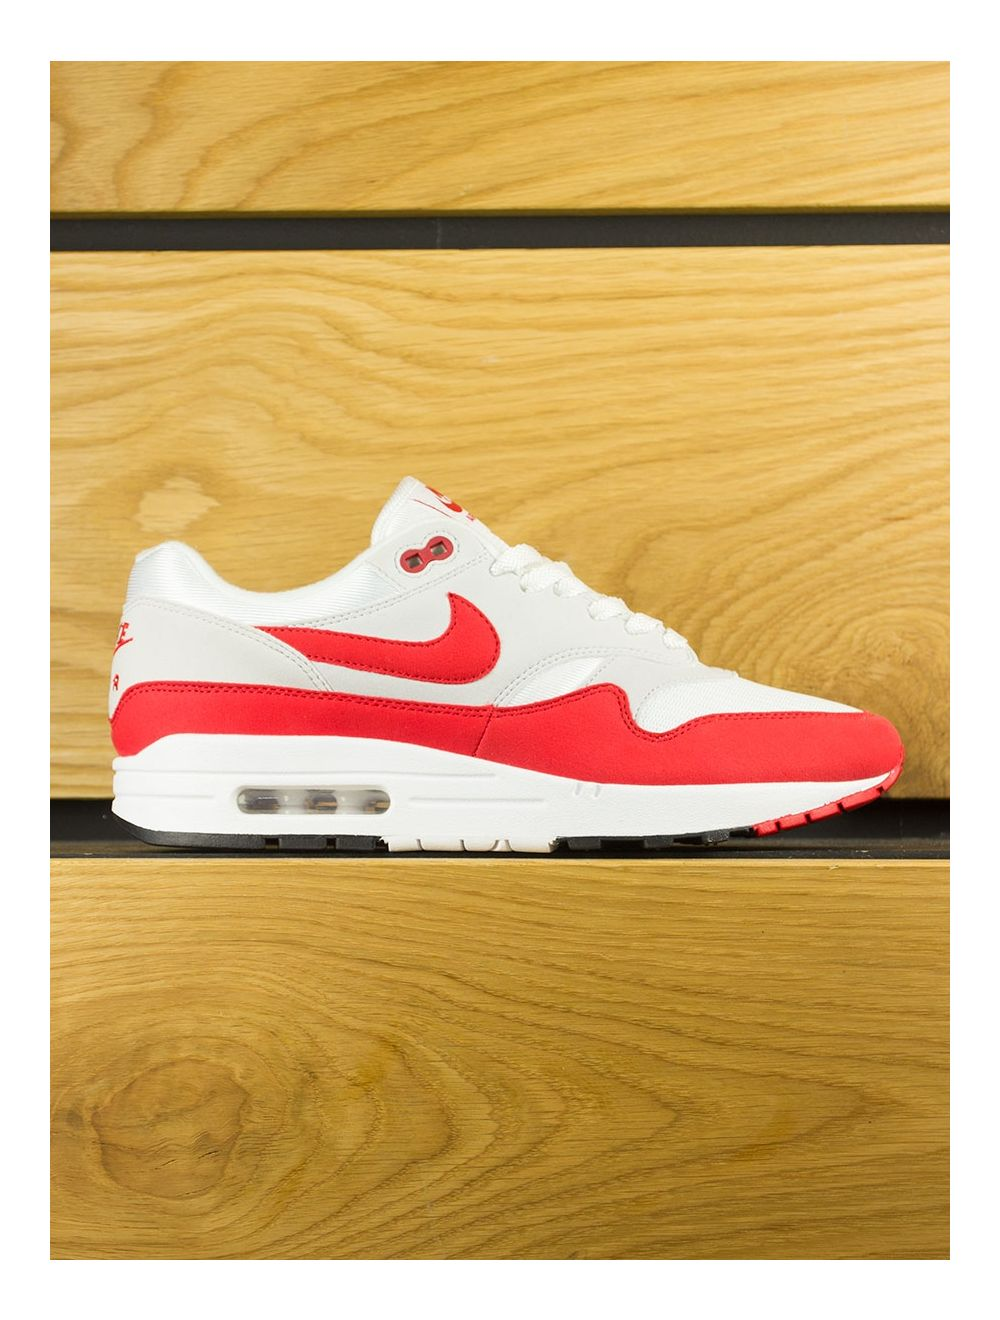 separation shoes 67ae7 35bca Nike Air Max 1 OG - White University Red